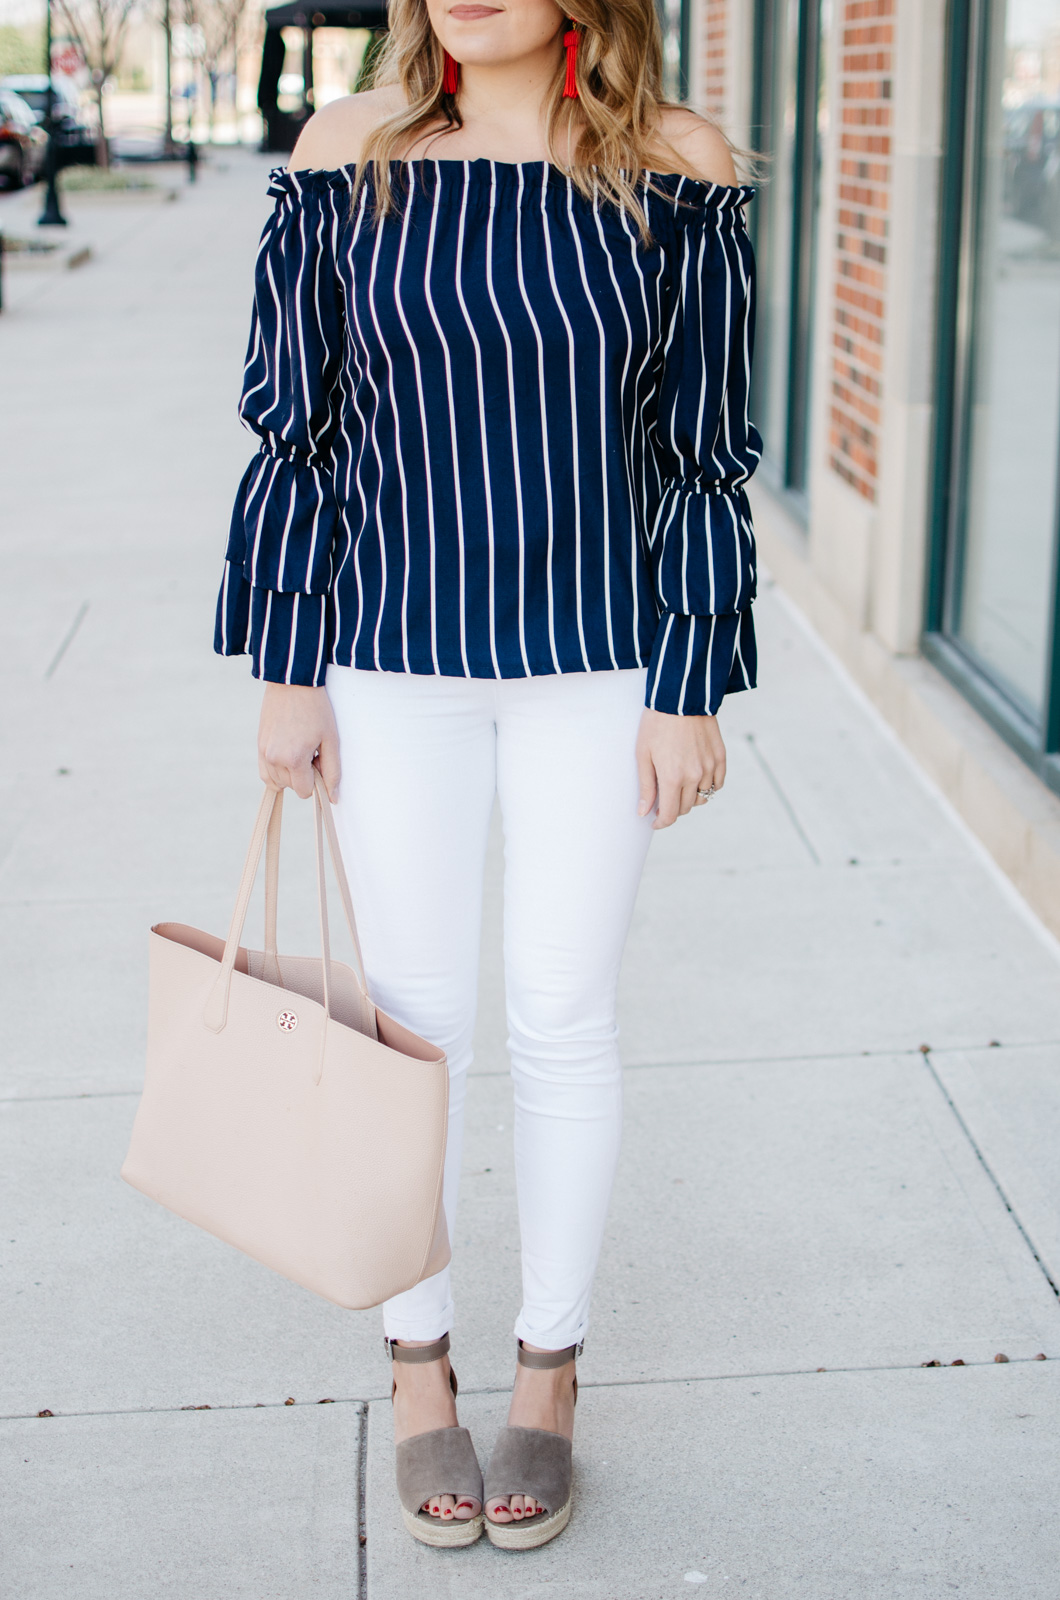 0e4a90b1aad trendy spring outfit - Click through for more cute Spring outfits or to  shop this look